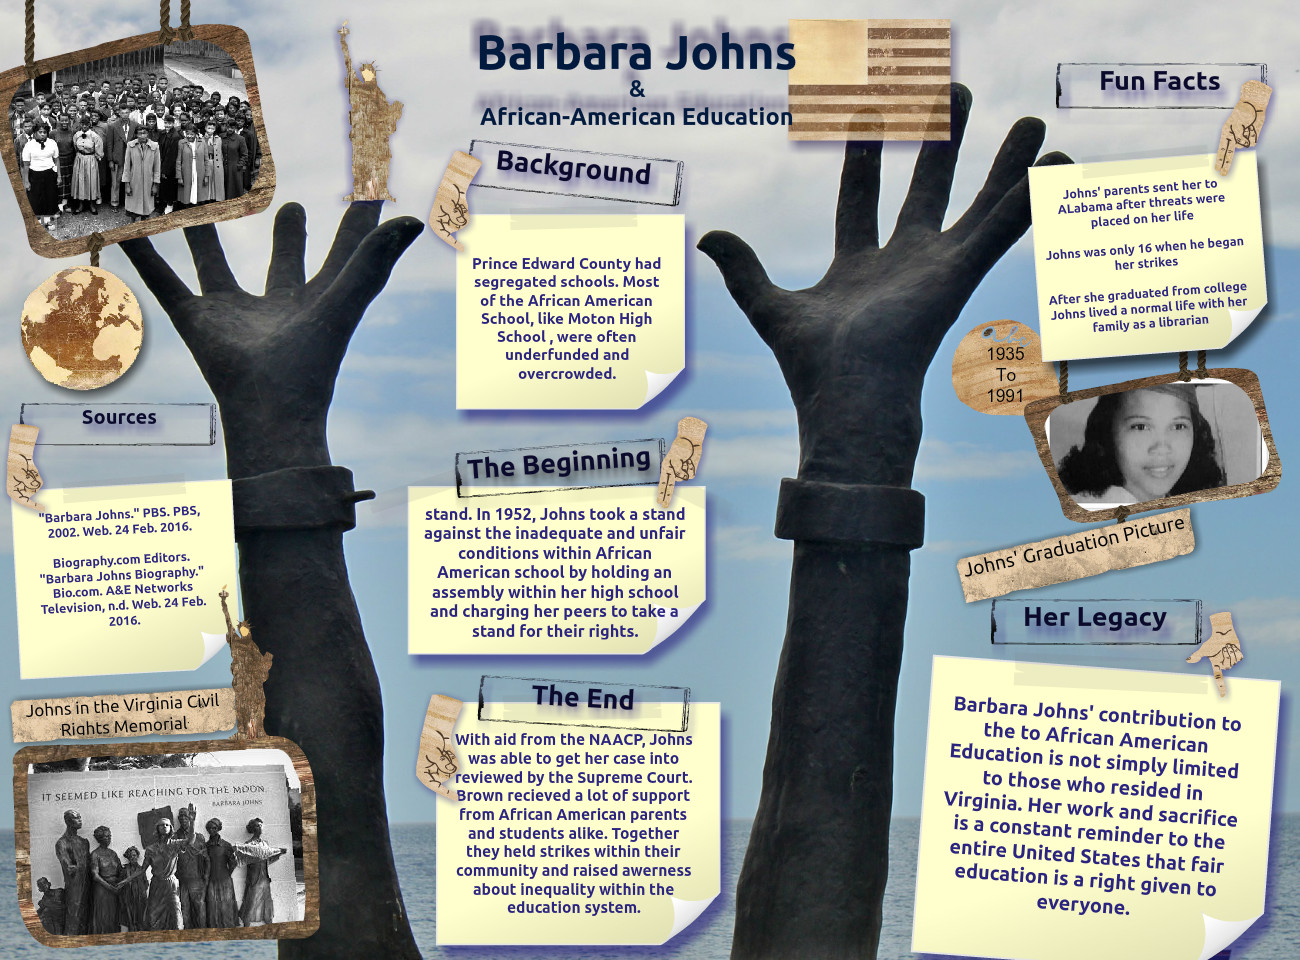 Barbara Johns and African American Education